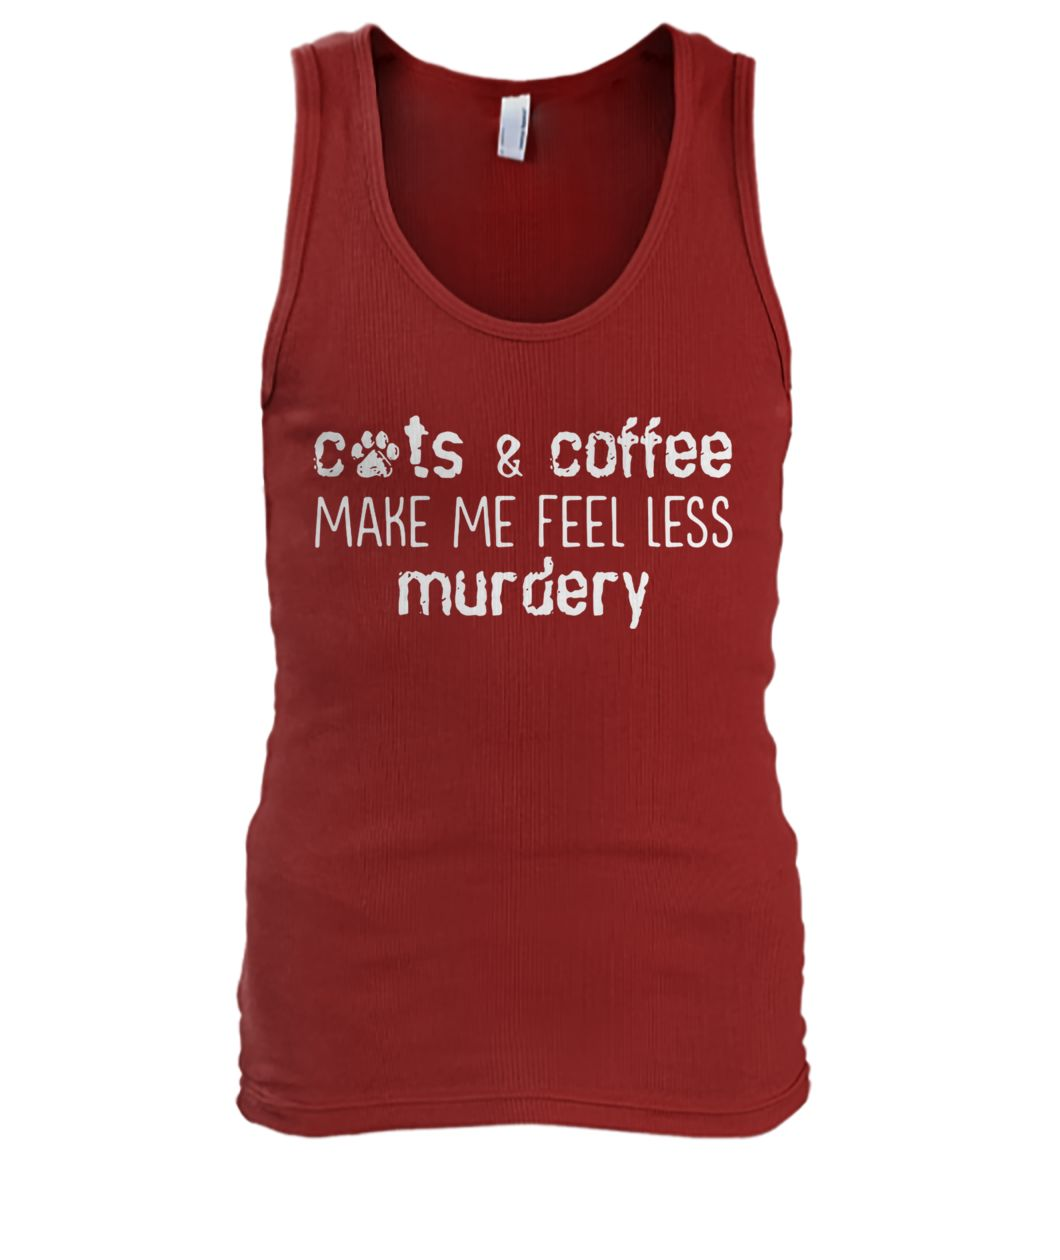 Cats and coffee make me feel less murdery men's tank top